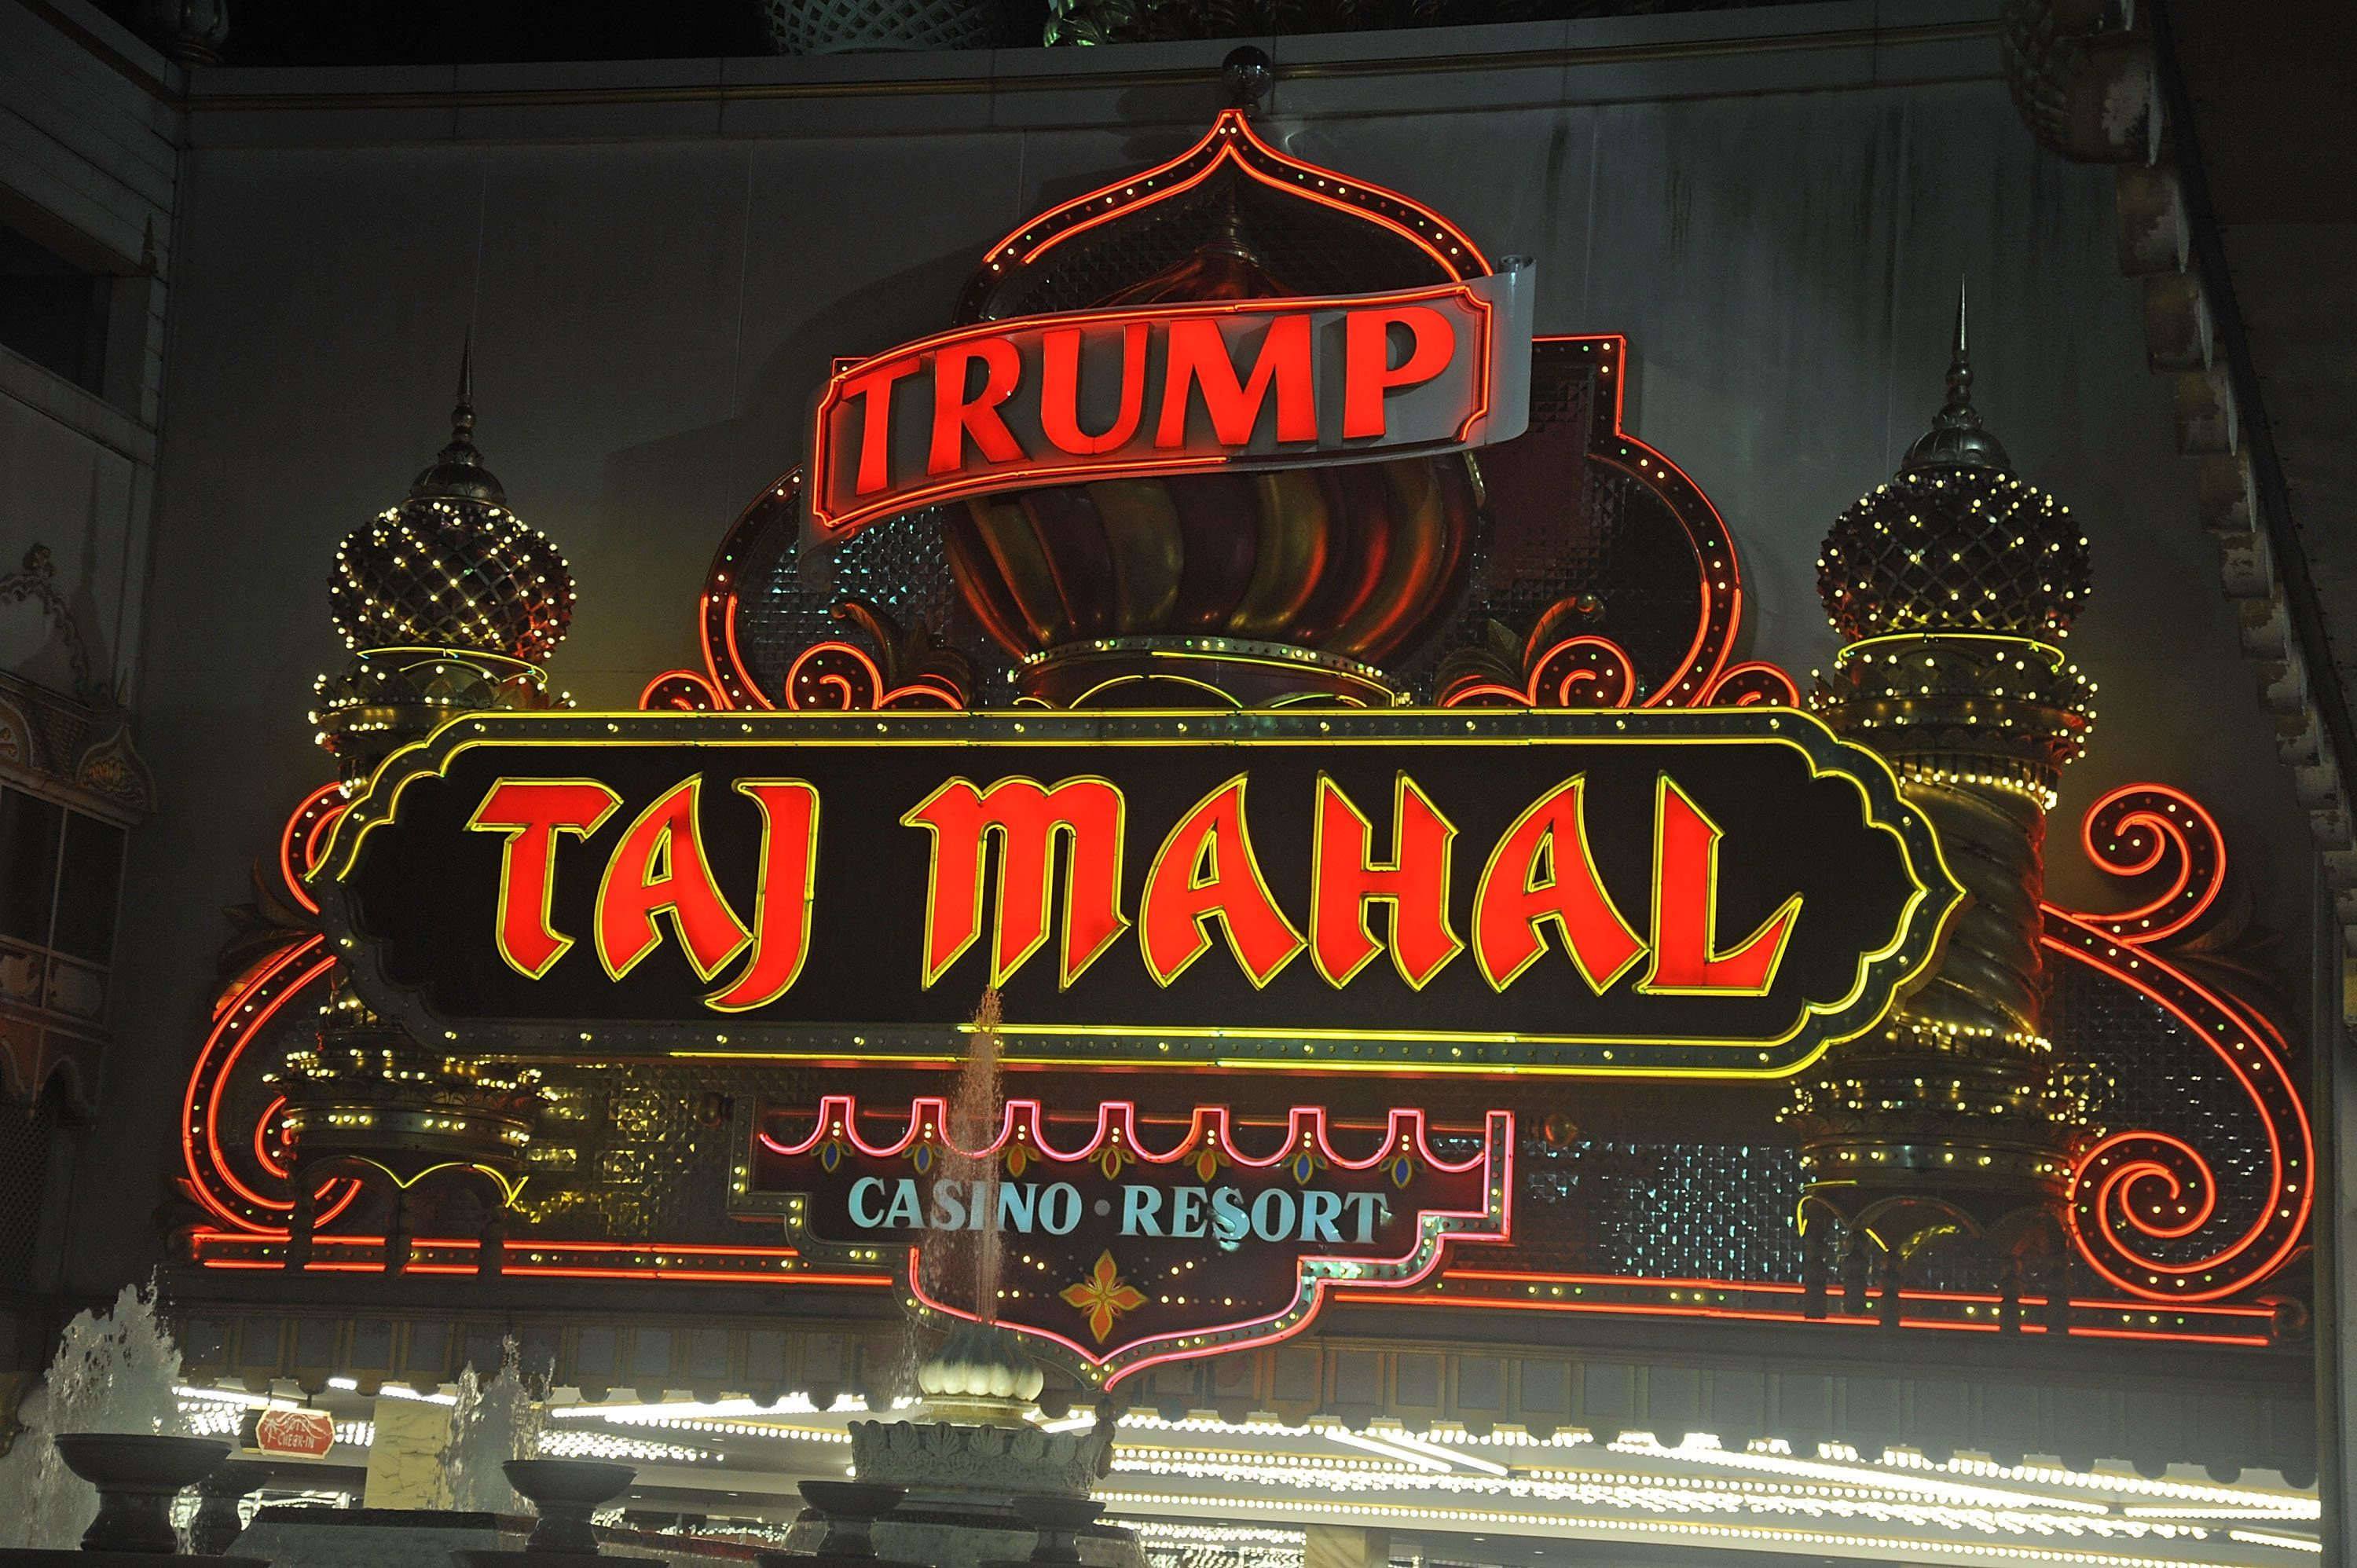 ATLANTIC CITY, NJ - OCTOBER 09:  Atmosphere at the Trump Taj Mahal in Atlantic City, New Jersey that will close  Monday October 10 2016 at 5:59am in Atlantic City, NJ at Trump Taj Mahal on October 9, 2016 in Atlantic City, New Jersey.  (Photo by Bobby Bank/Getty Images)